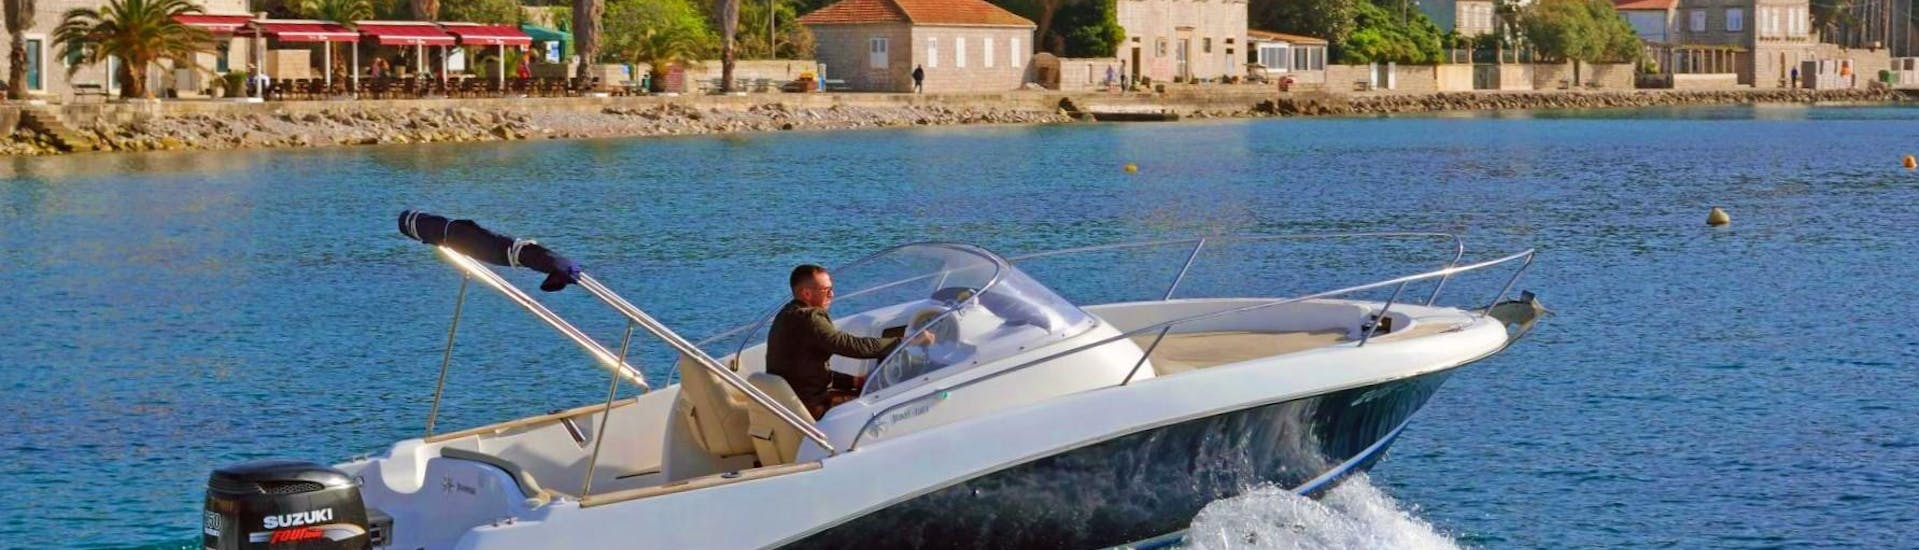 A skipper from Explore Dubrovnik by Boat is getting the Private Boat (7pax) to Elaphiti Islands with Snorkeling ready for his customers.